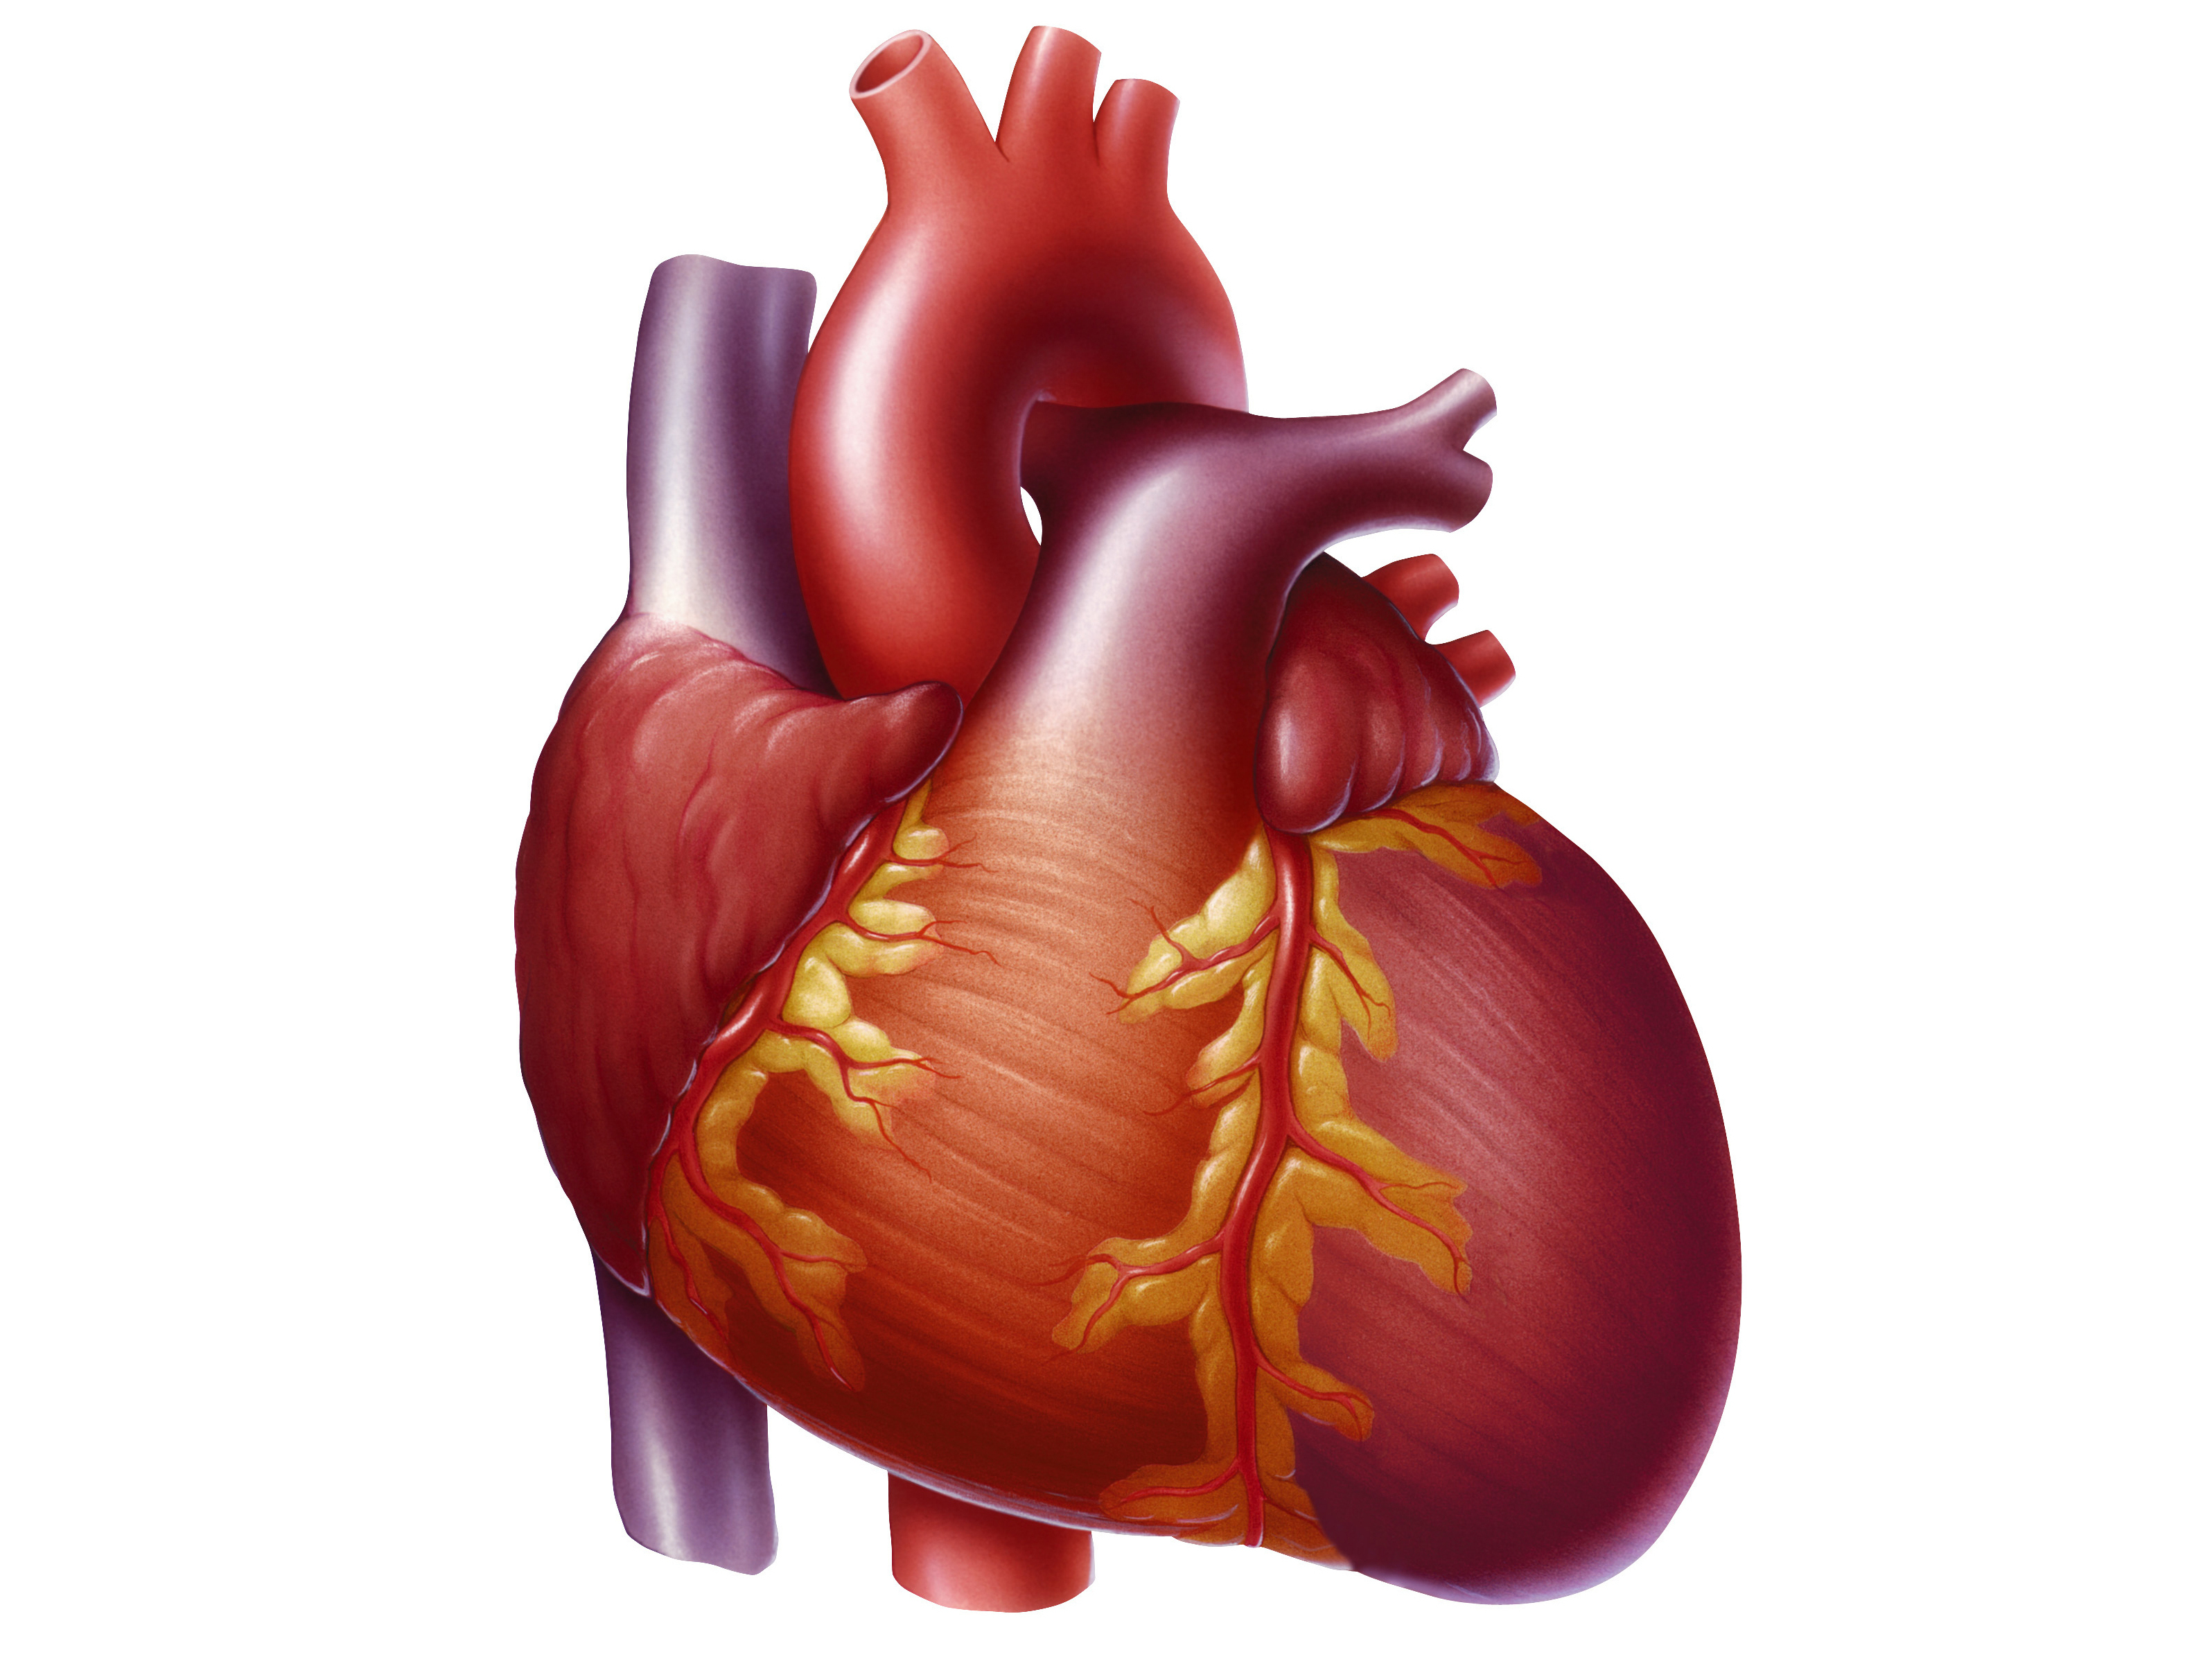 Image Of Heart Medical